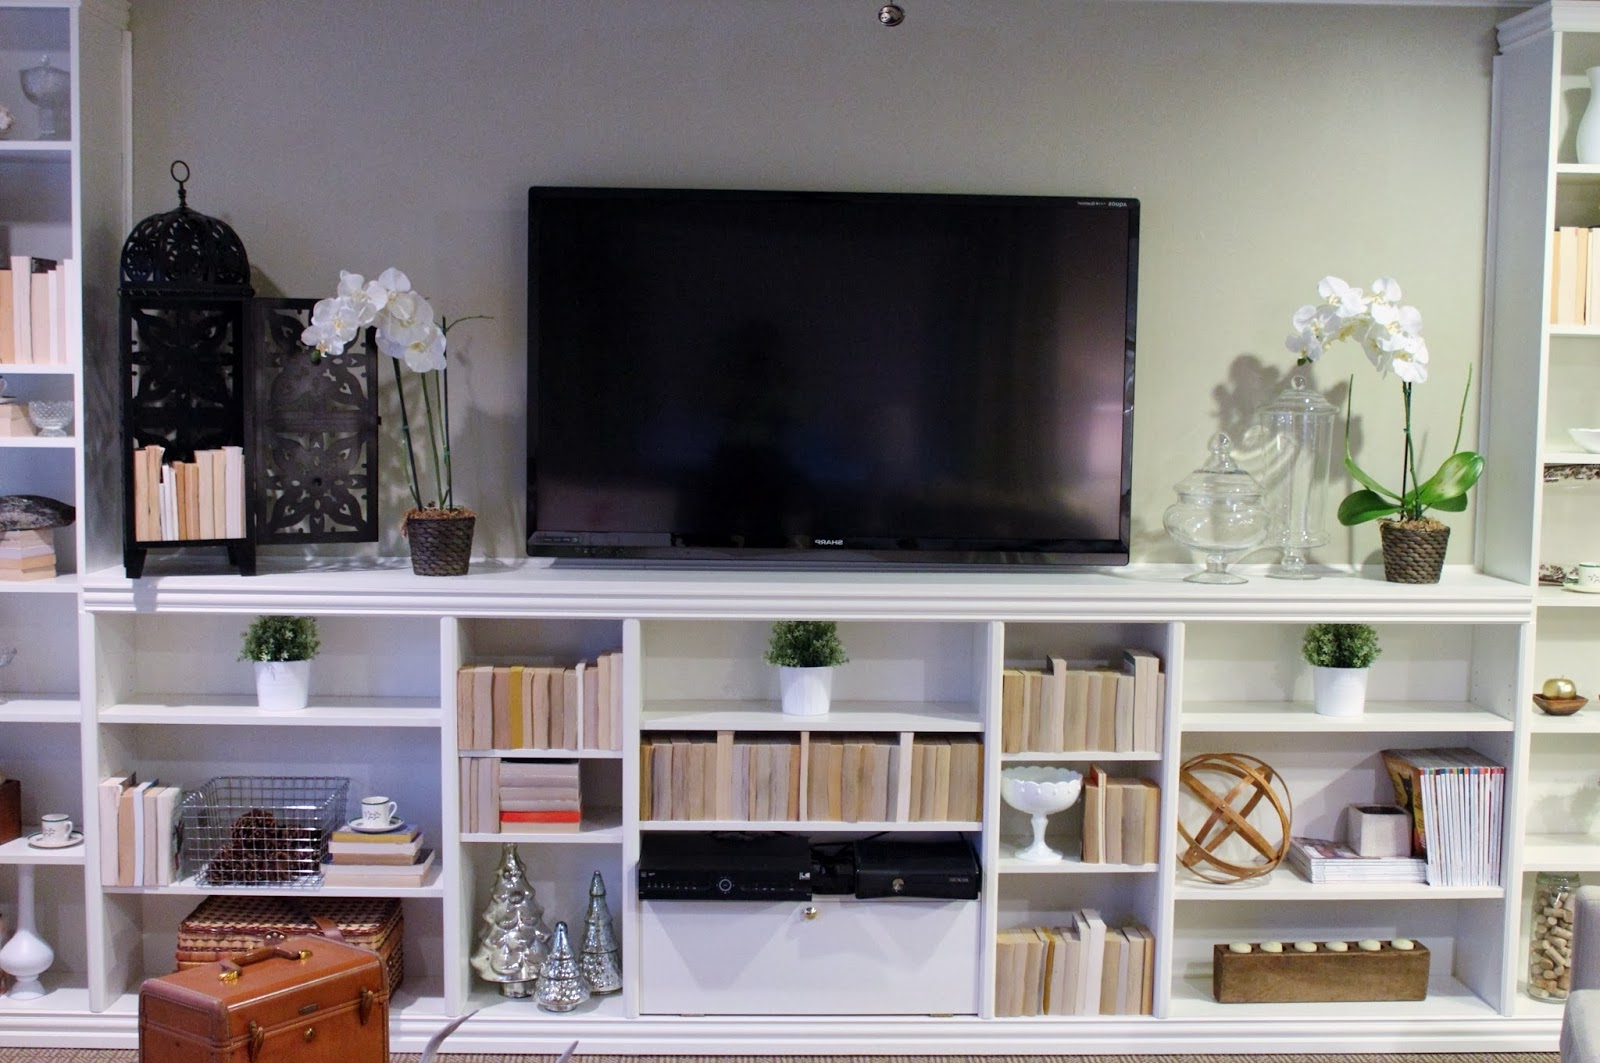 Tv Stands Costco Walmart 55 Inch Ikea Stand Hemnes Bookshelves With With Popular Tv Stands And Bookshelf (View 9 of 20)